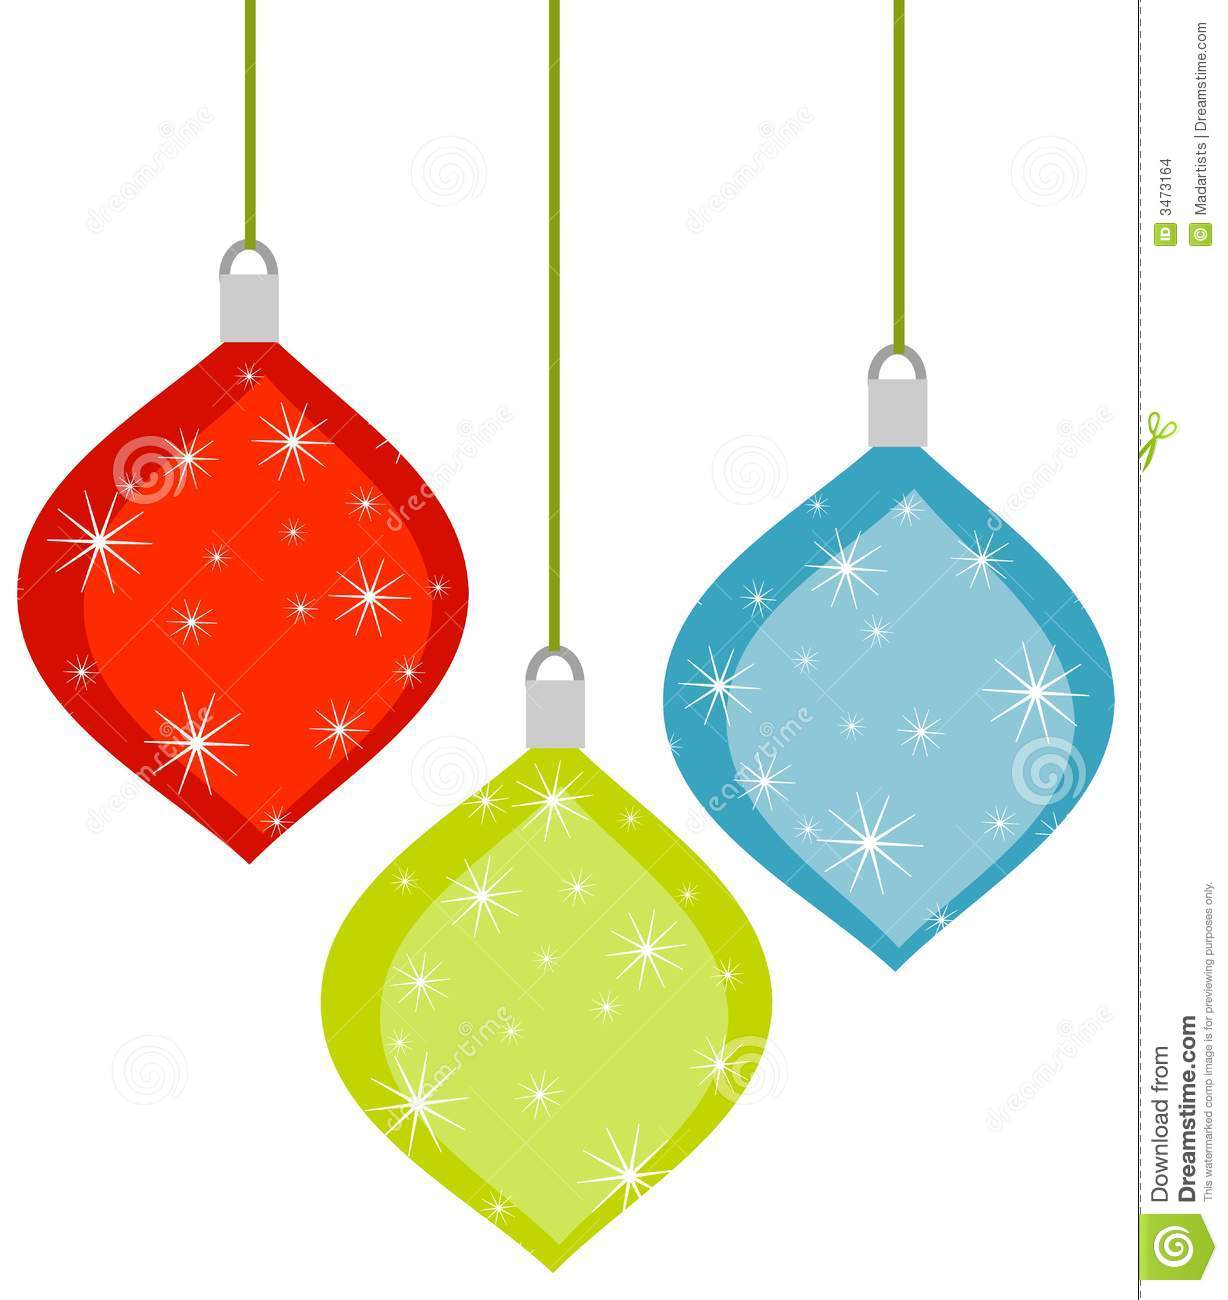 3 Retro Christmas Ornaments Stock Illustration Illustration Of